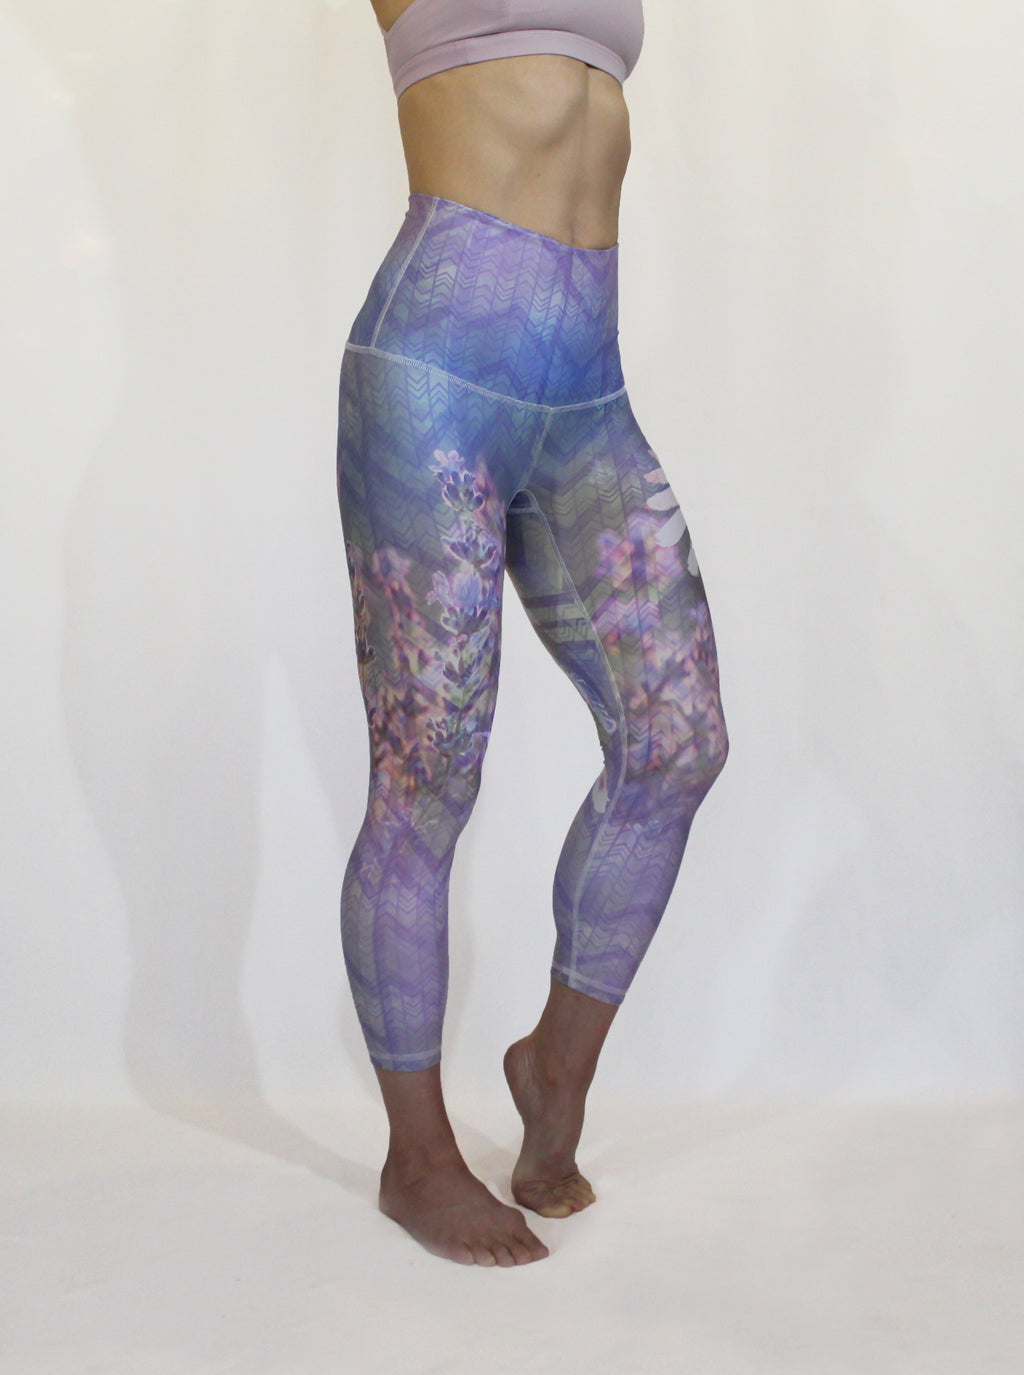 MAY - The Wildest Dream Leggings - Sold Out